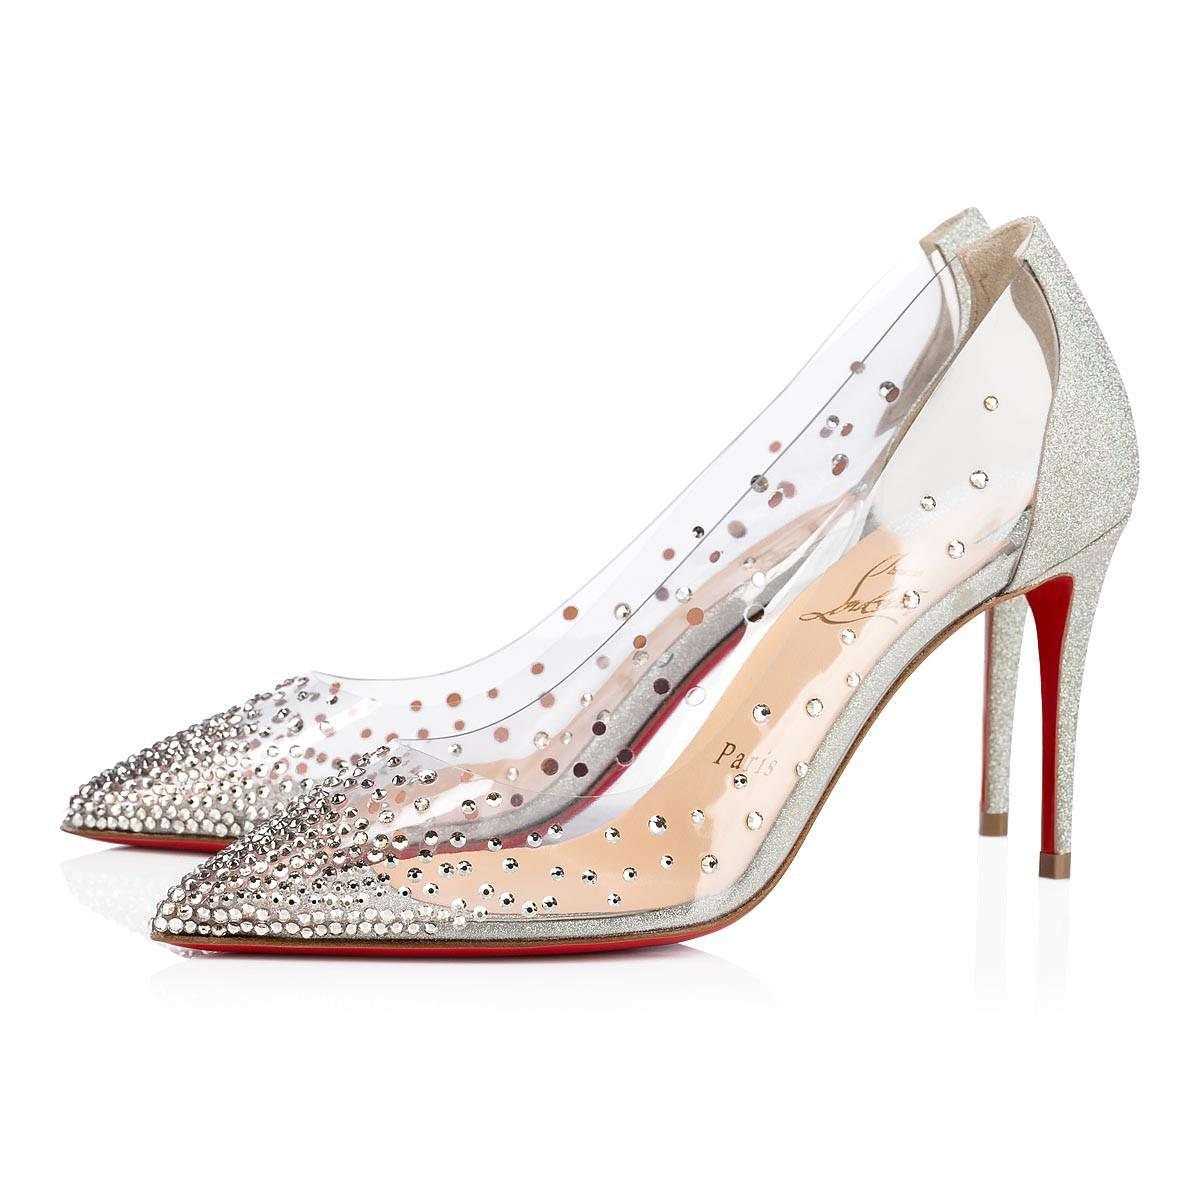 795be15172b5 Christian Louboutin. Women s Degrastrass Pvc